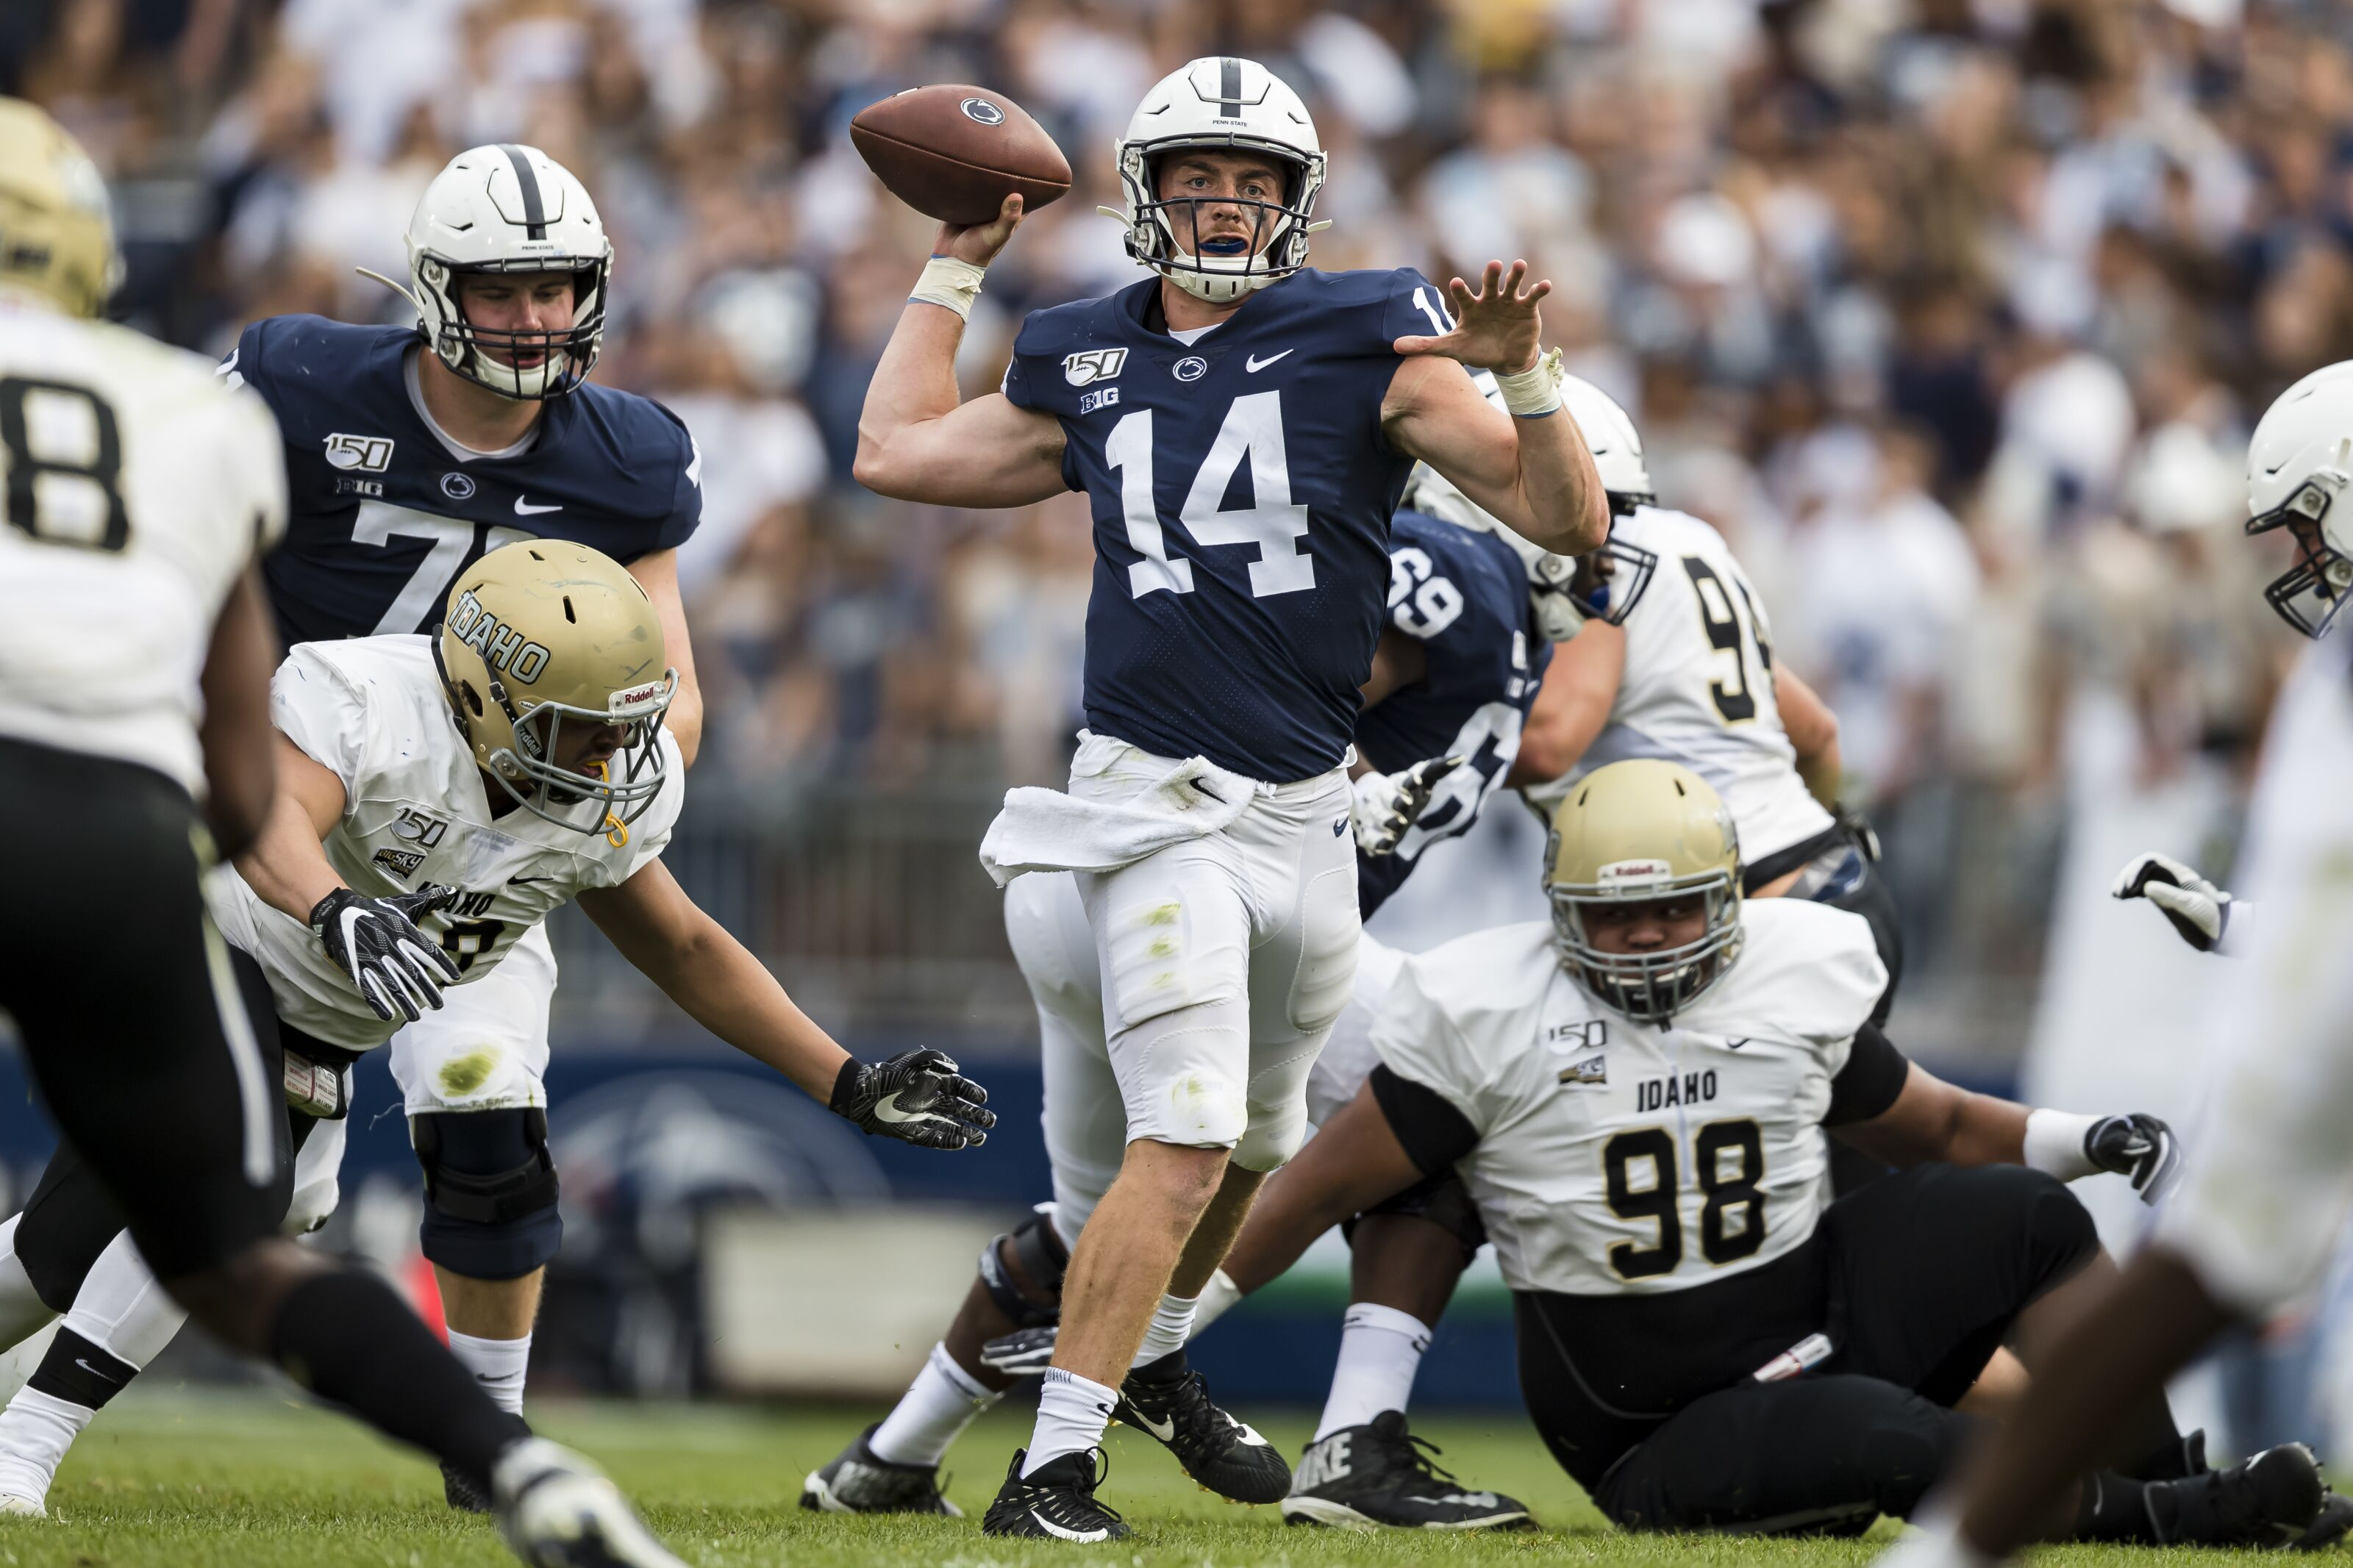 Penn State football: What are the chances of making the playoffs right now?